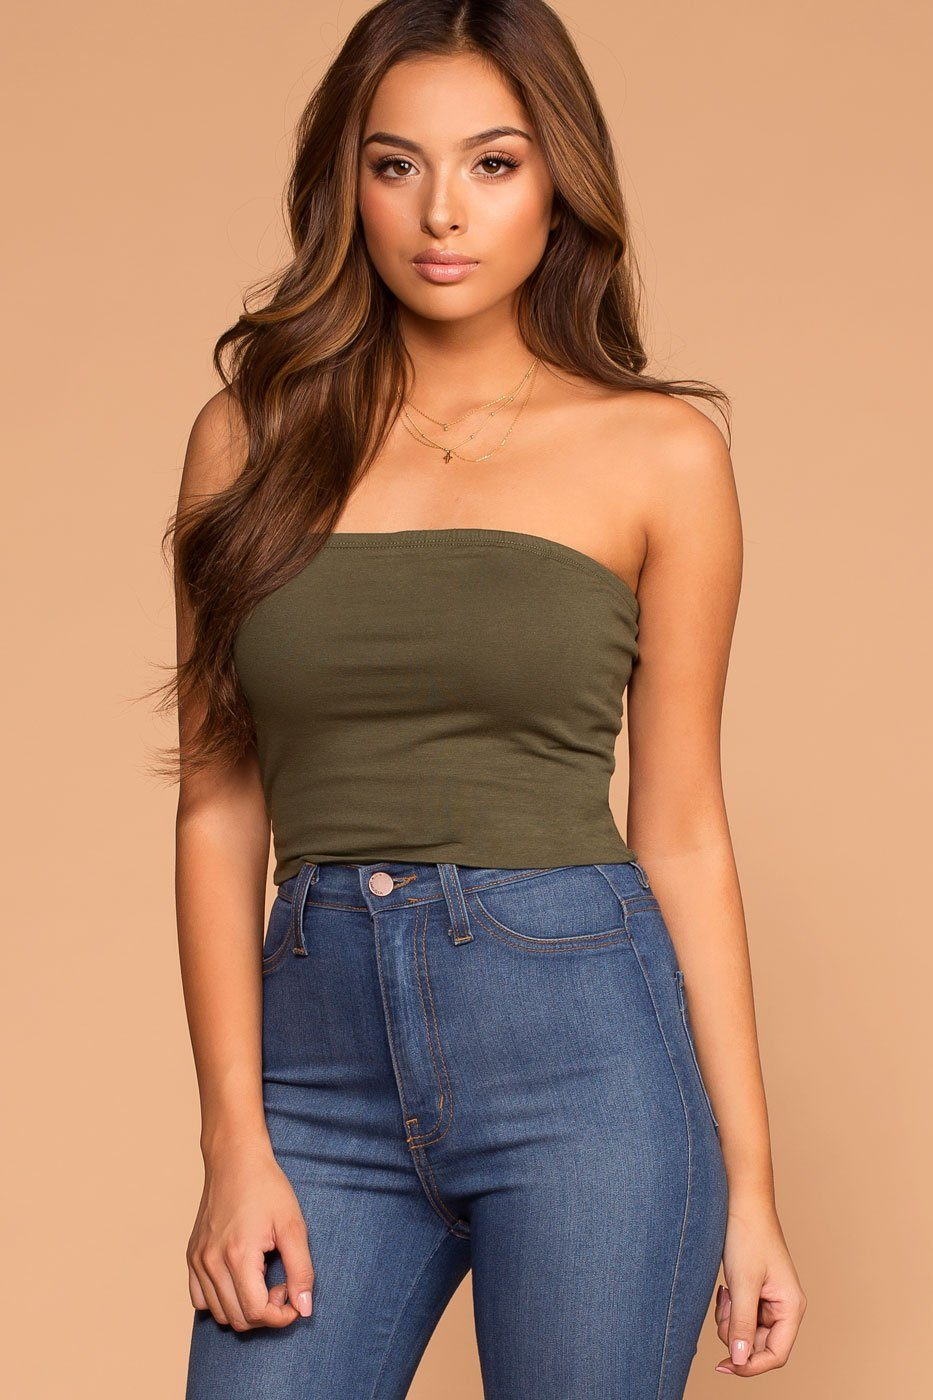 Alera Tube Crop Top - True Olive | Active Basic